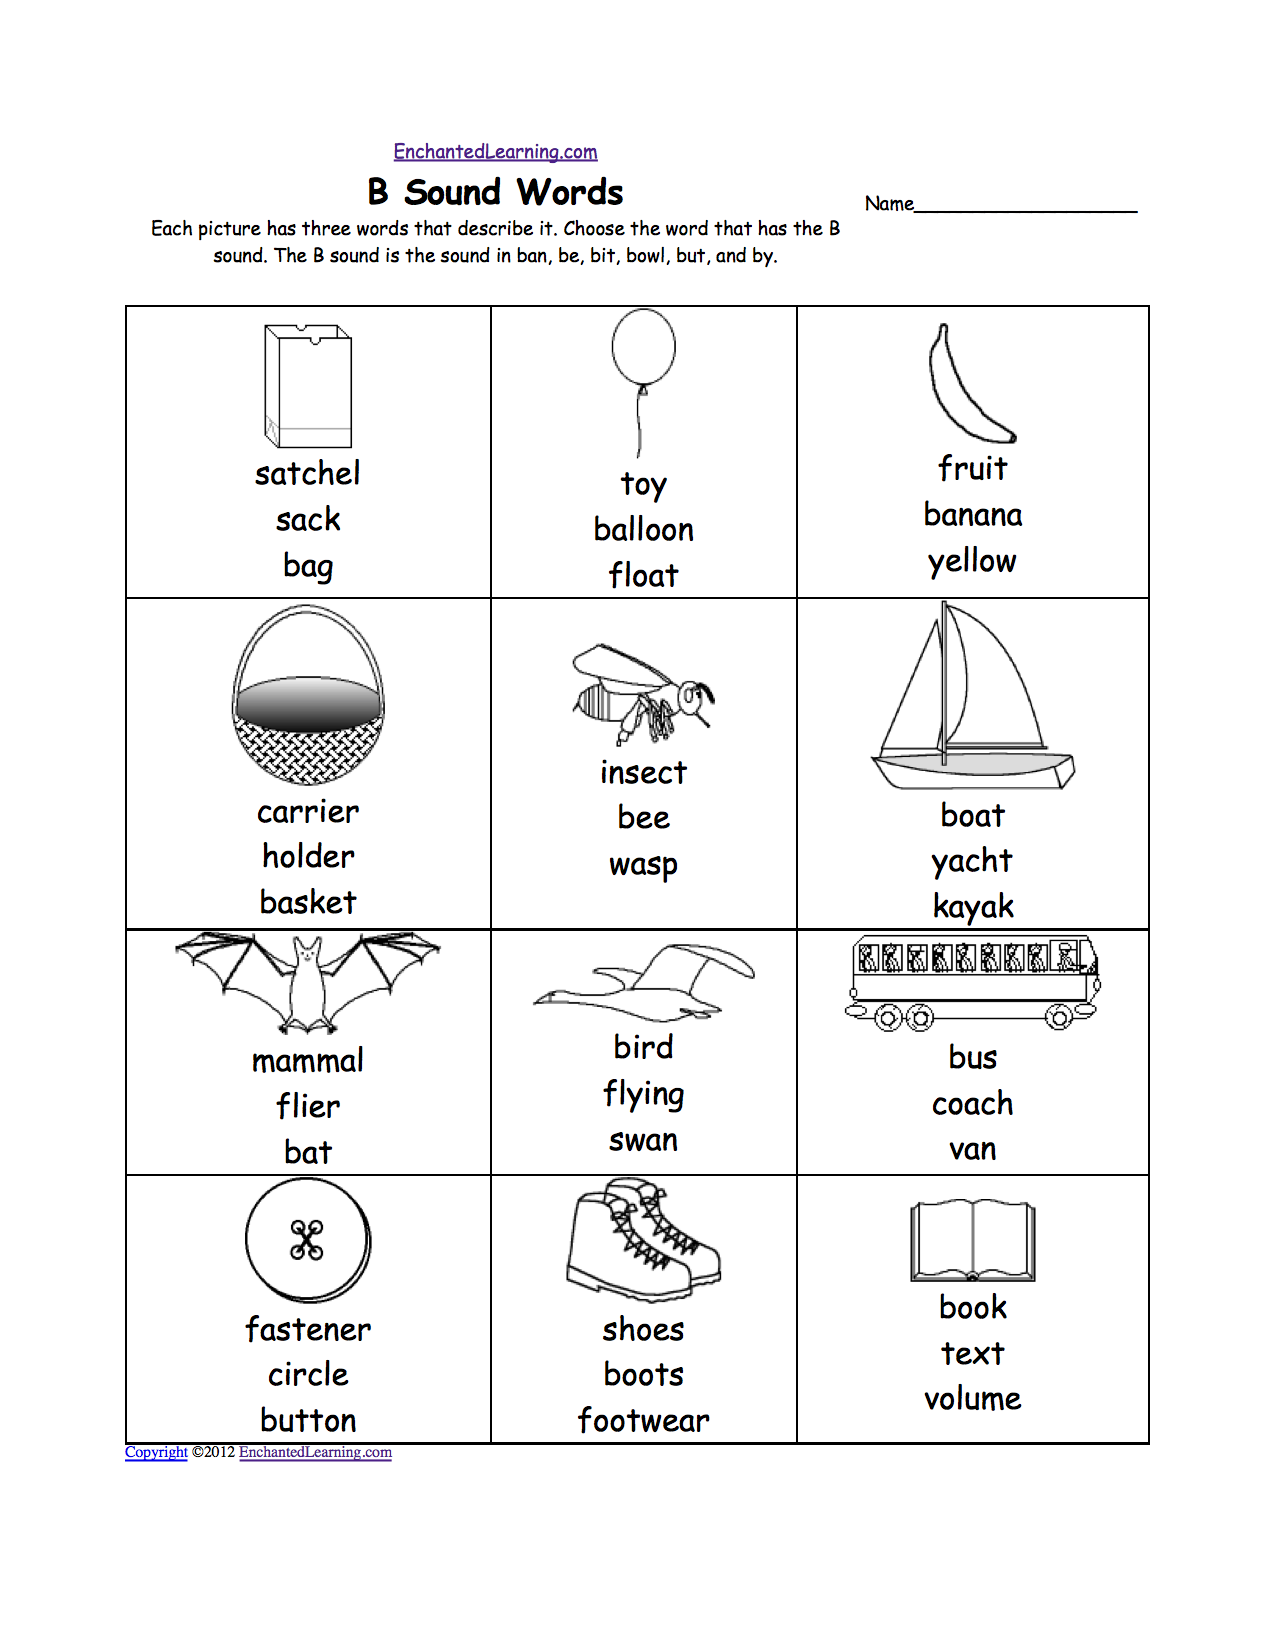 Proatmealus  Splendid Phonics Worksheets Multiple Choice Worksheets To Print  With Likable Quotbquot Sound Phonics Worksheet Multiple Choice Each Picture Has Three Words That Describe It Choose The Word That Has A Quotbquot Sound The Quotbquot Sound Is The Sound  With Amusing Worksheets About Adjectives Also Preschool Comprehension Worksheets In Addition Shape Words Worksheet And Literary Terms Matching Worksheet As Well As Forms Of Energy Worksheets For Kids Additionally Times Table Worksheets To Print From Enchantedlearningcom With Proatmealus  Likable Phonics Worksheets Multiple Choice Worksheets To Print  With Amusing Quotbquot Sound Phonics Worksheet Multiple Choice Each Picture Has Three Words That Describe It Choose The Word That Has A Quotbquot Sound The Quotbquot Sound Is The Sound  And Splendid Worksheets About Adjectives Also Preschool Comprehension Worksheets In Addition Shape Words Worksheet From Enchantedlearningcom